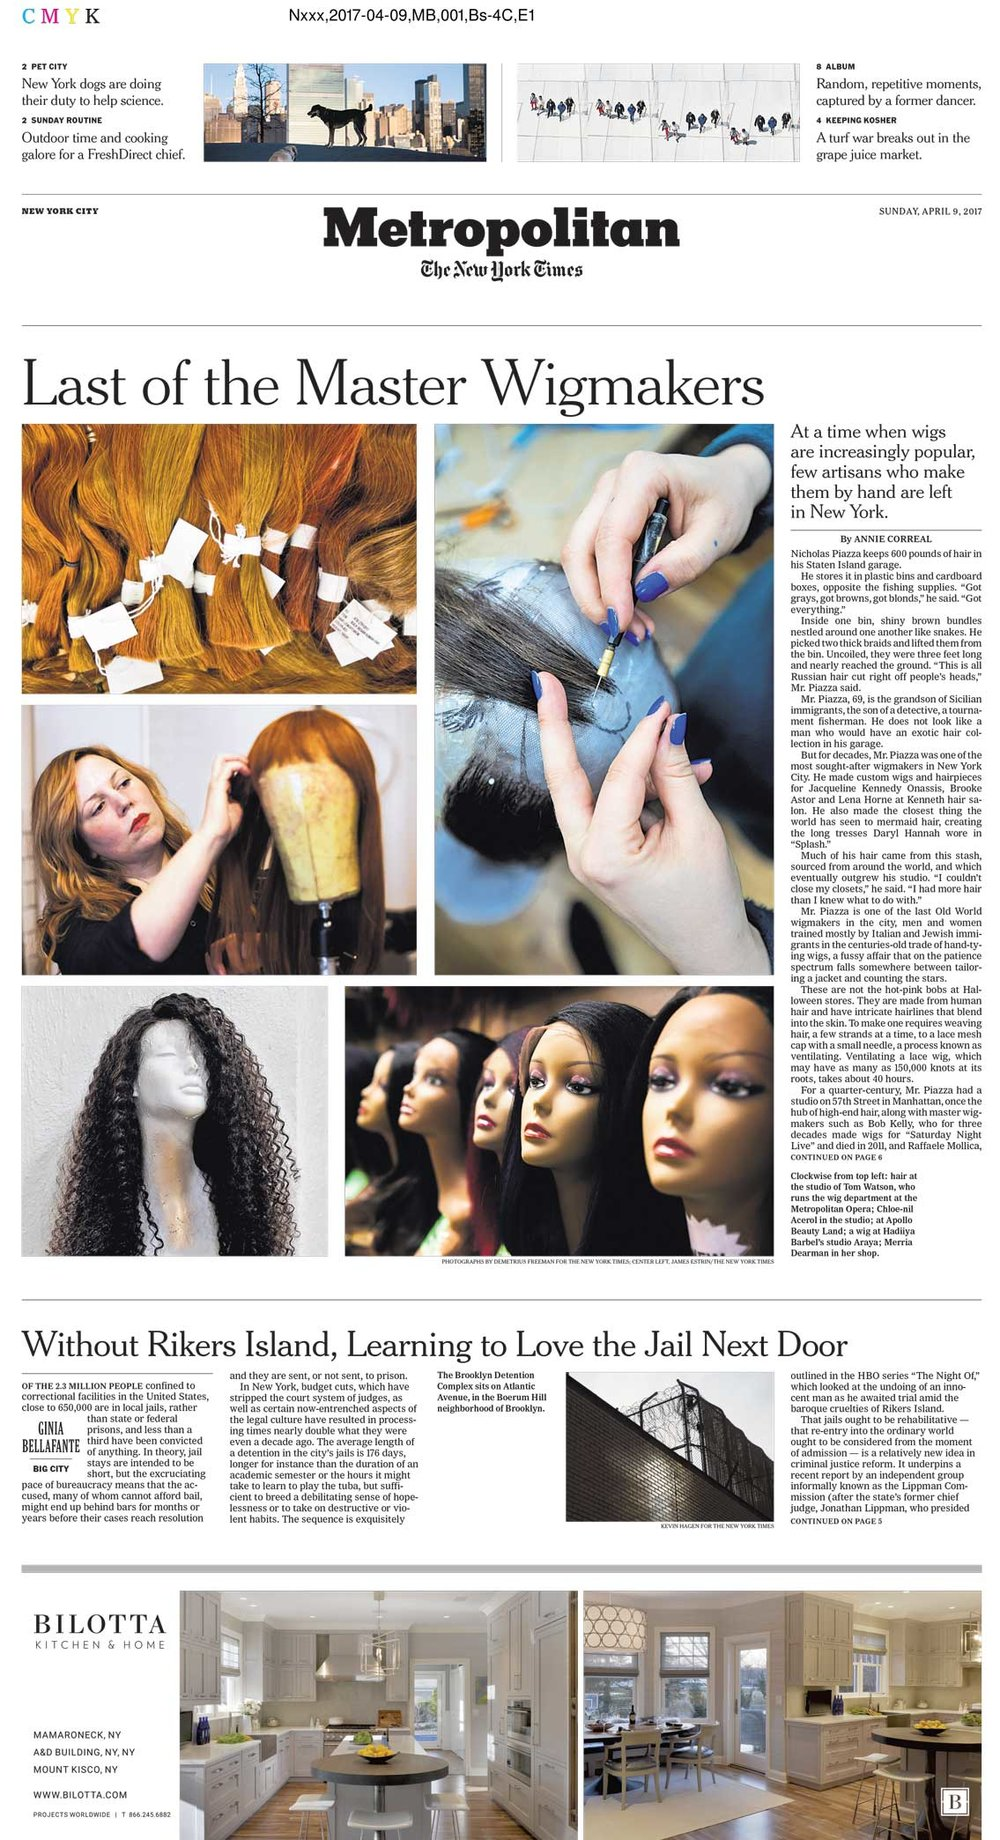 The New York Times Story:   Last of the Master Wigmakers